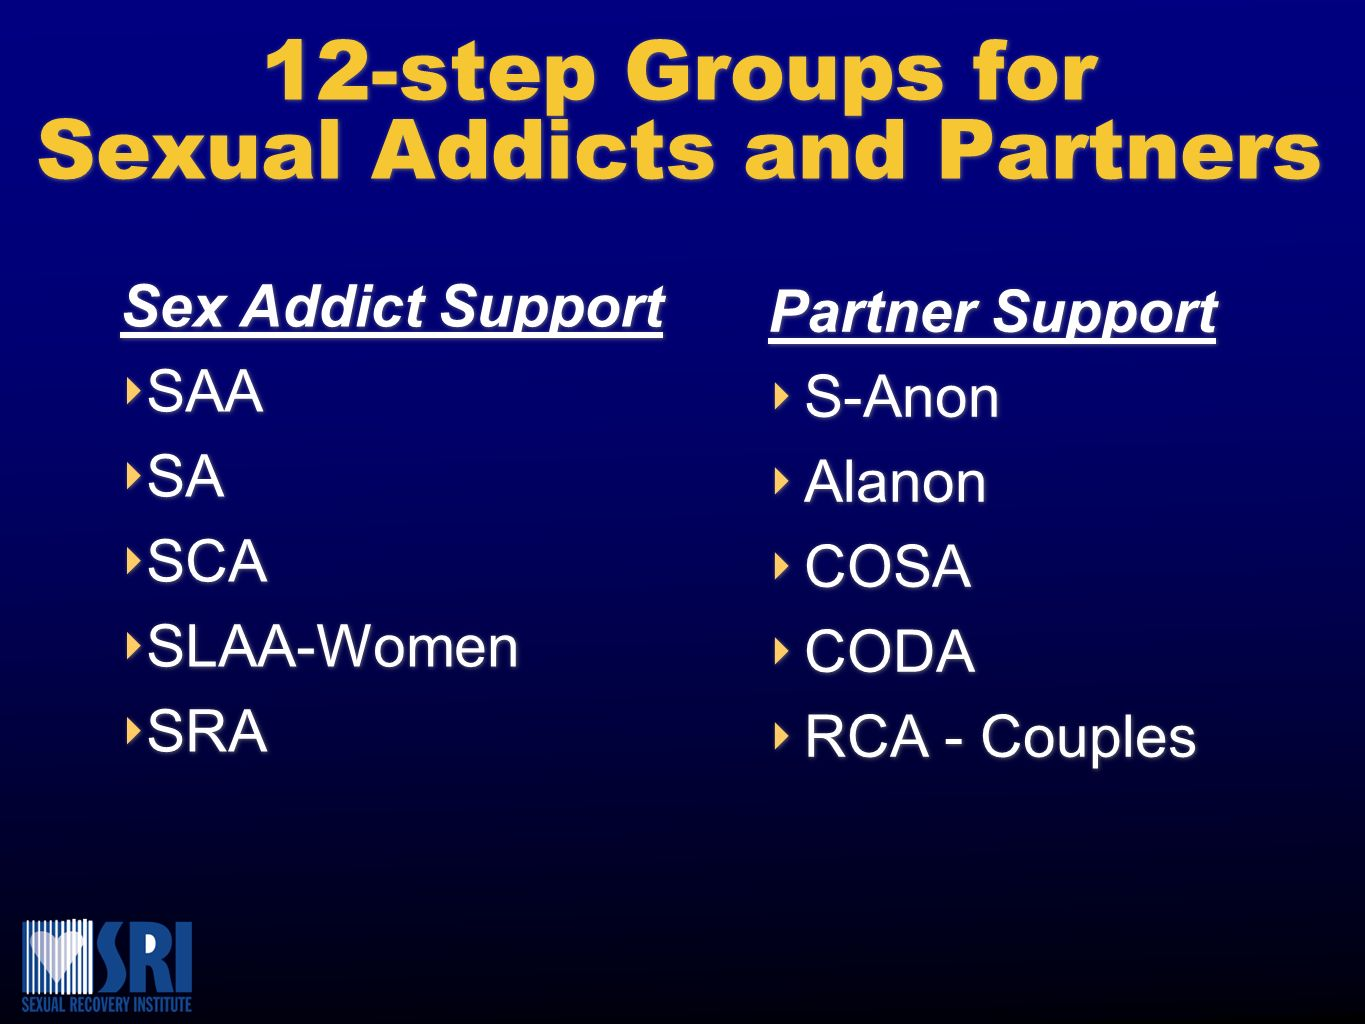 12-step Groups for Sexual Addicts and Partners